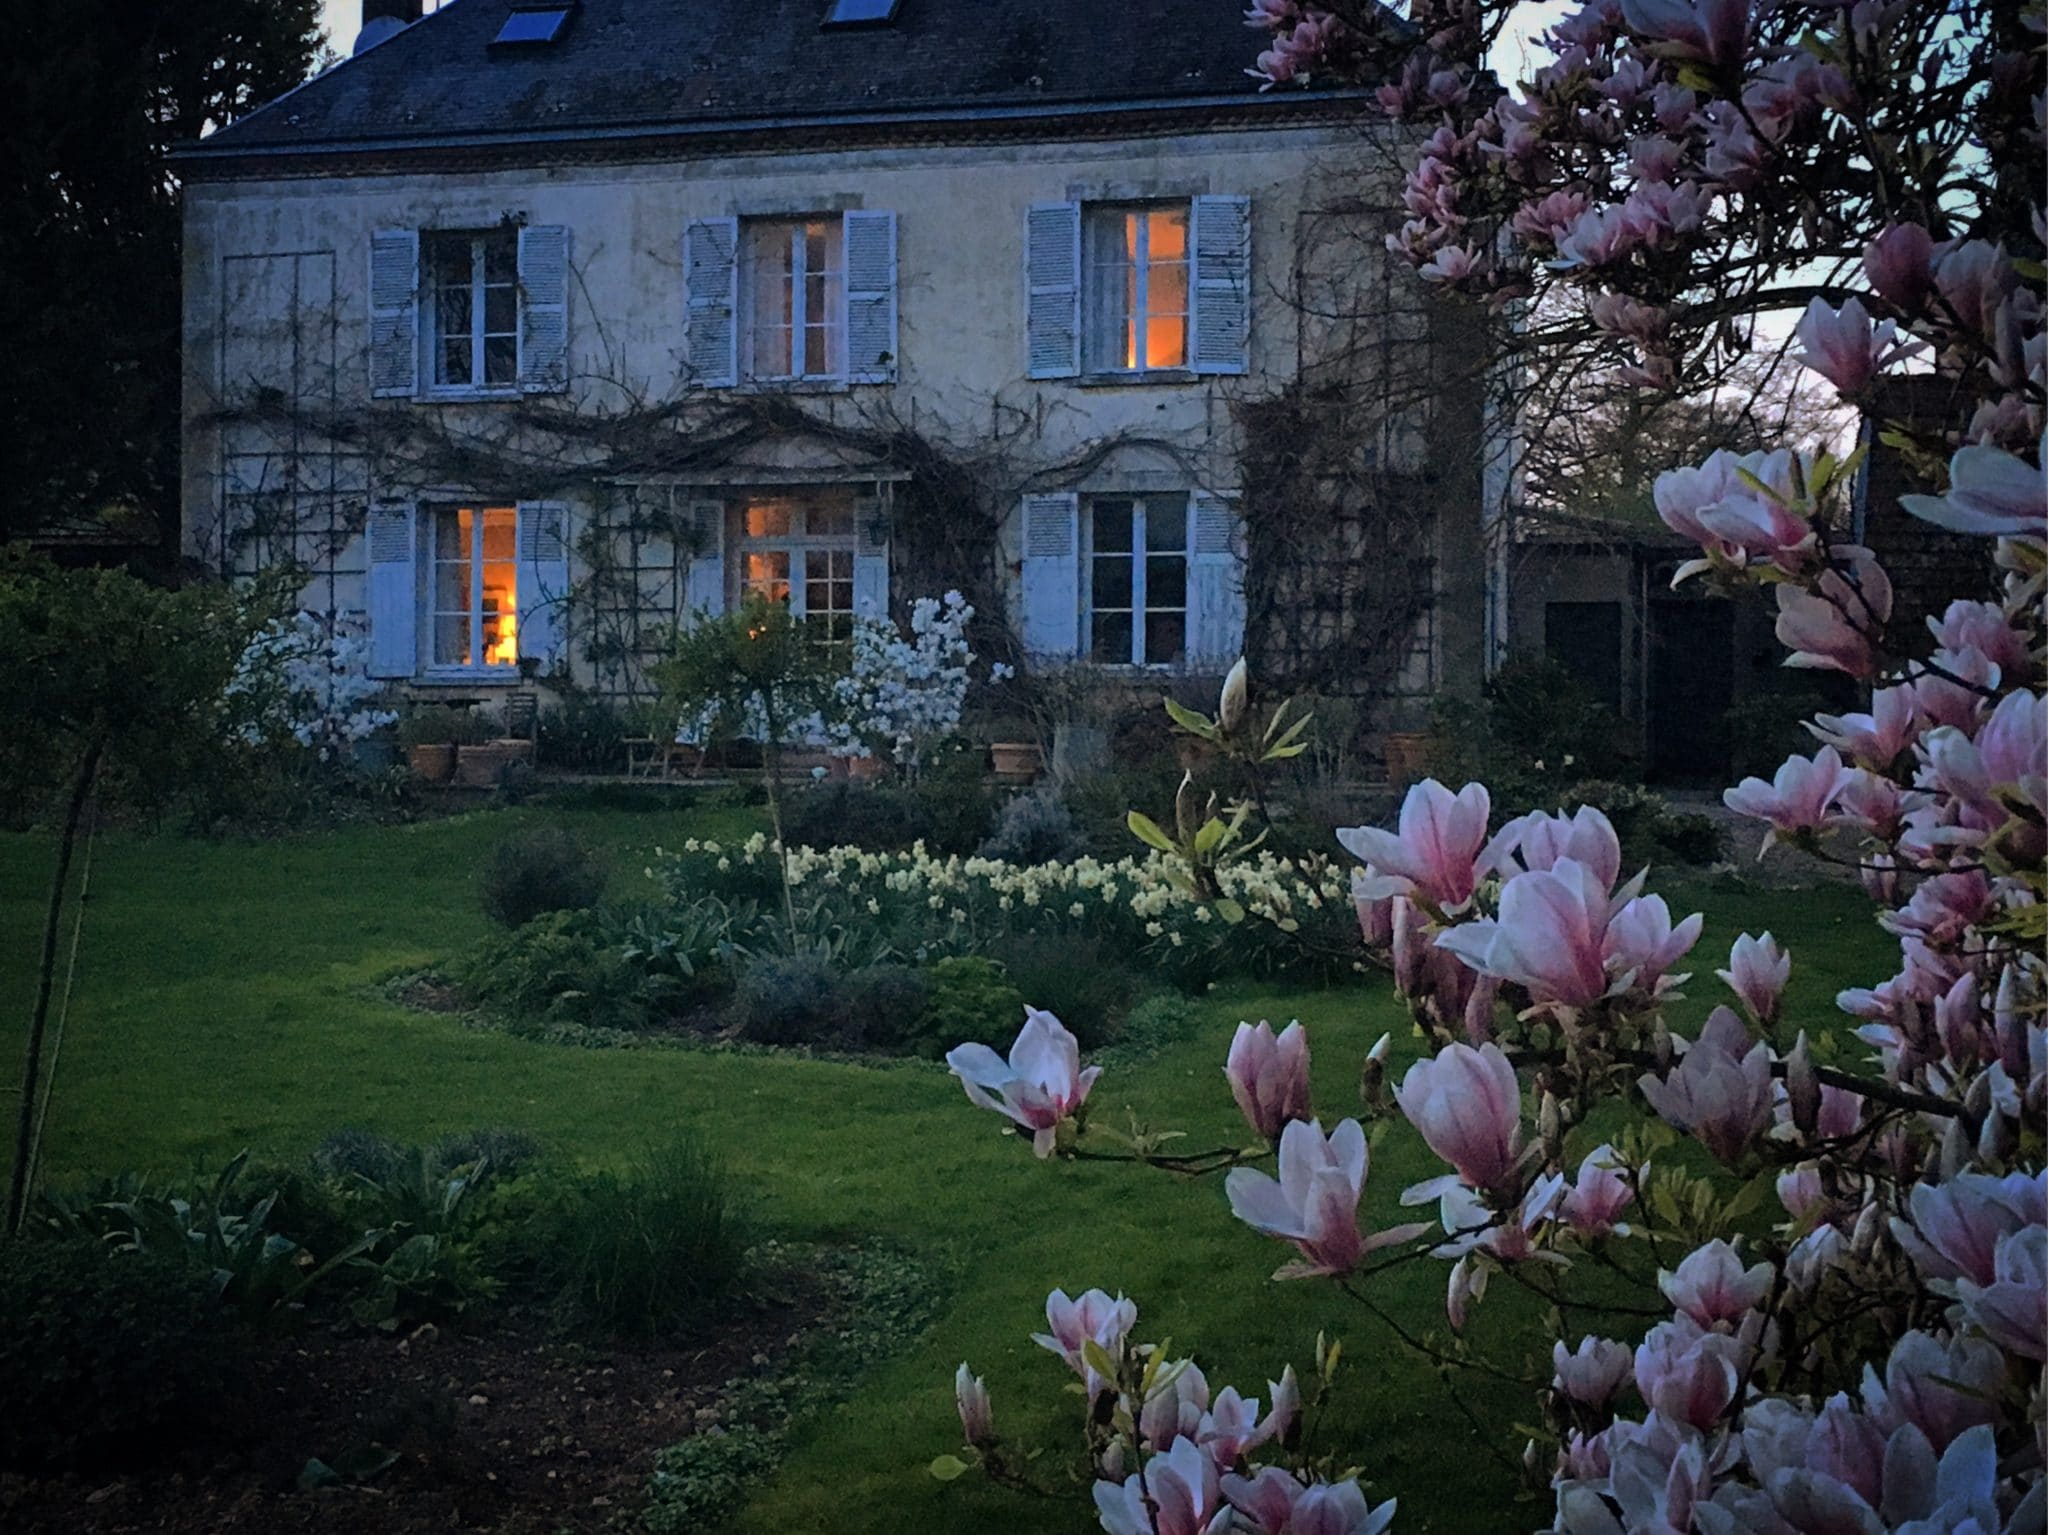 magnolia in flower in front of house with daffodils